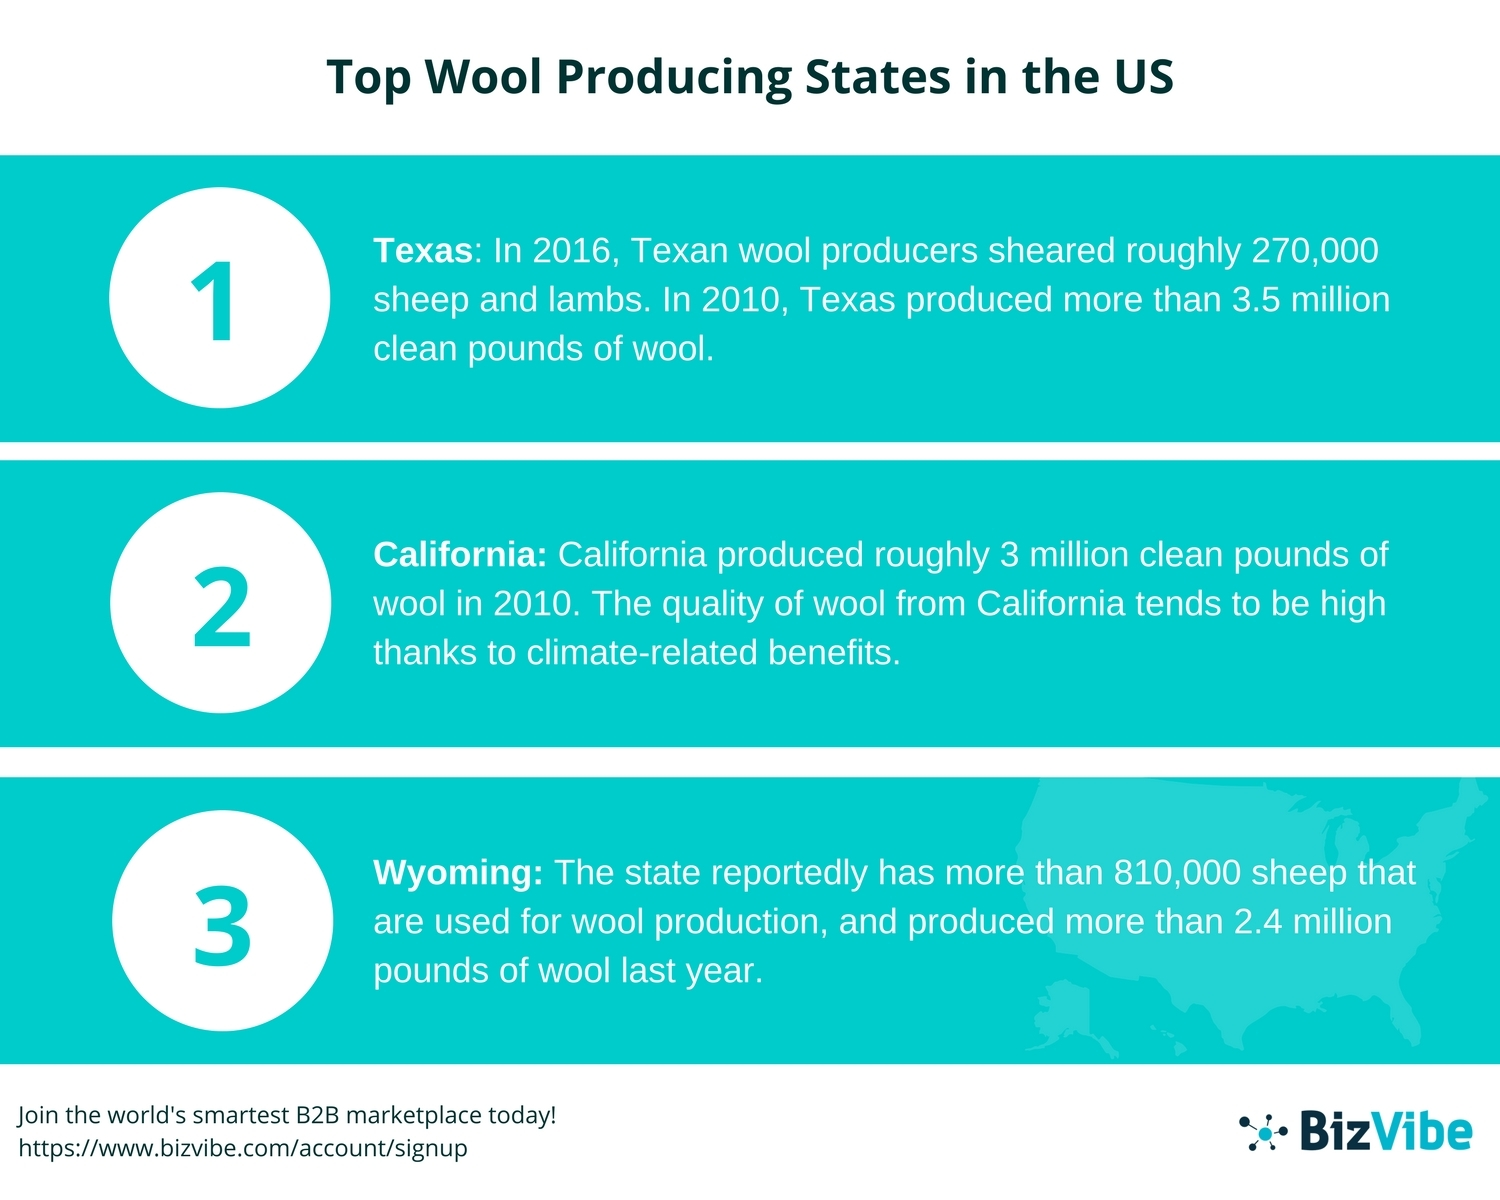 BizVibe Announces Their List of the Top 5 Wool Producing States in ...